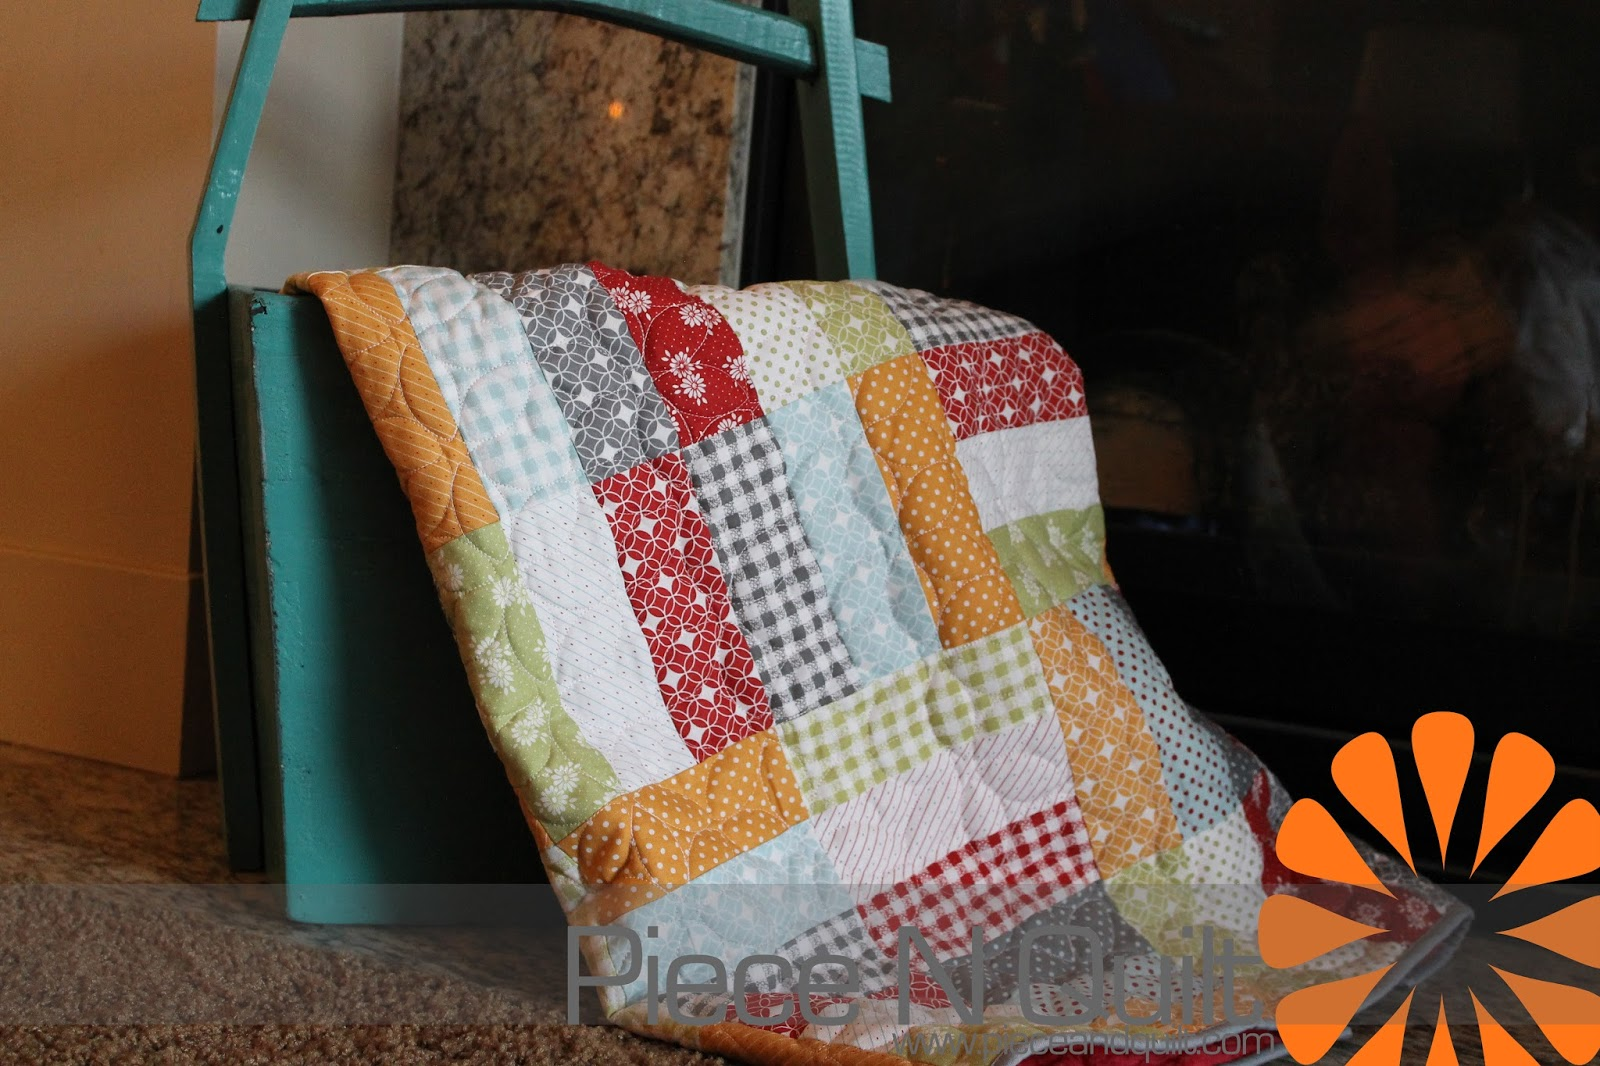 Piece N Quilt Jelly Roll Jam With Fat Quarter Shop